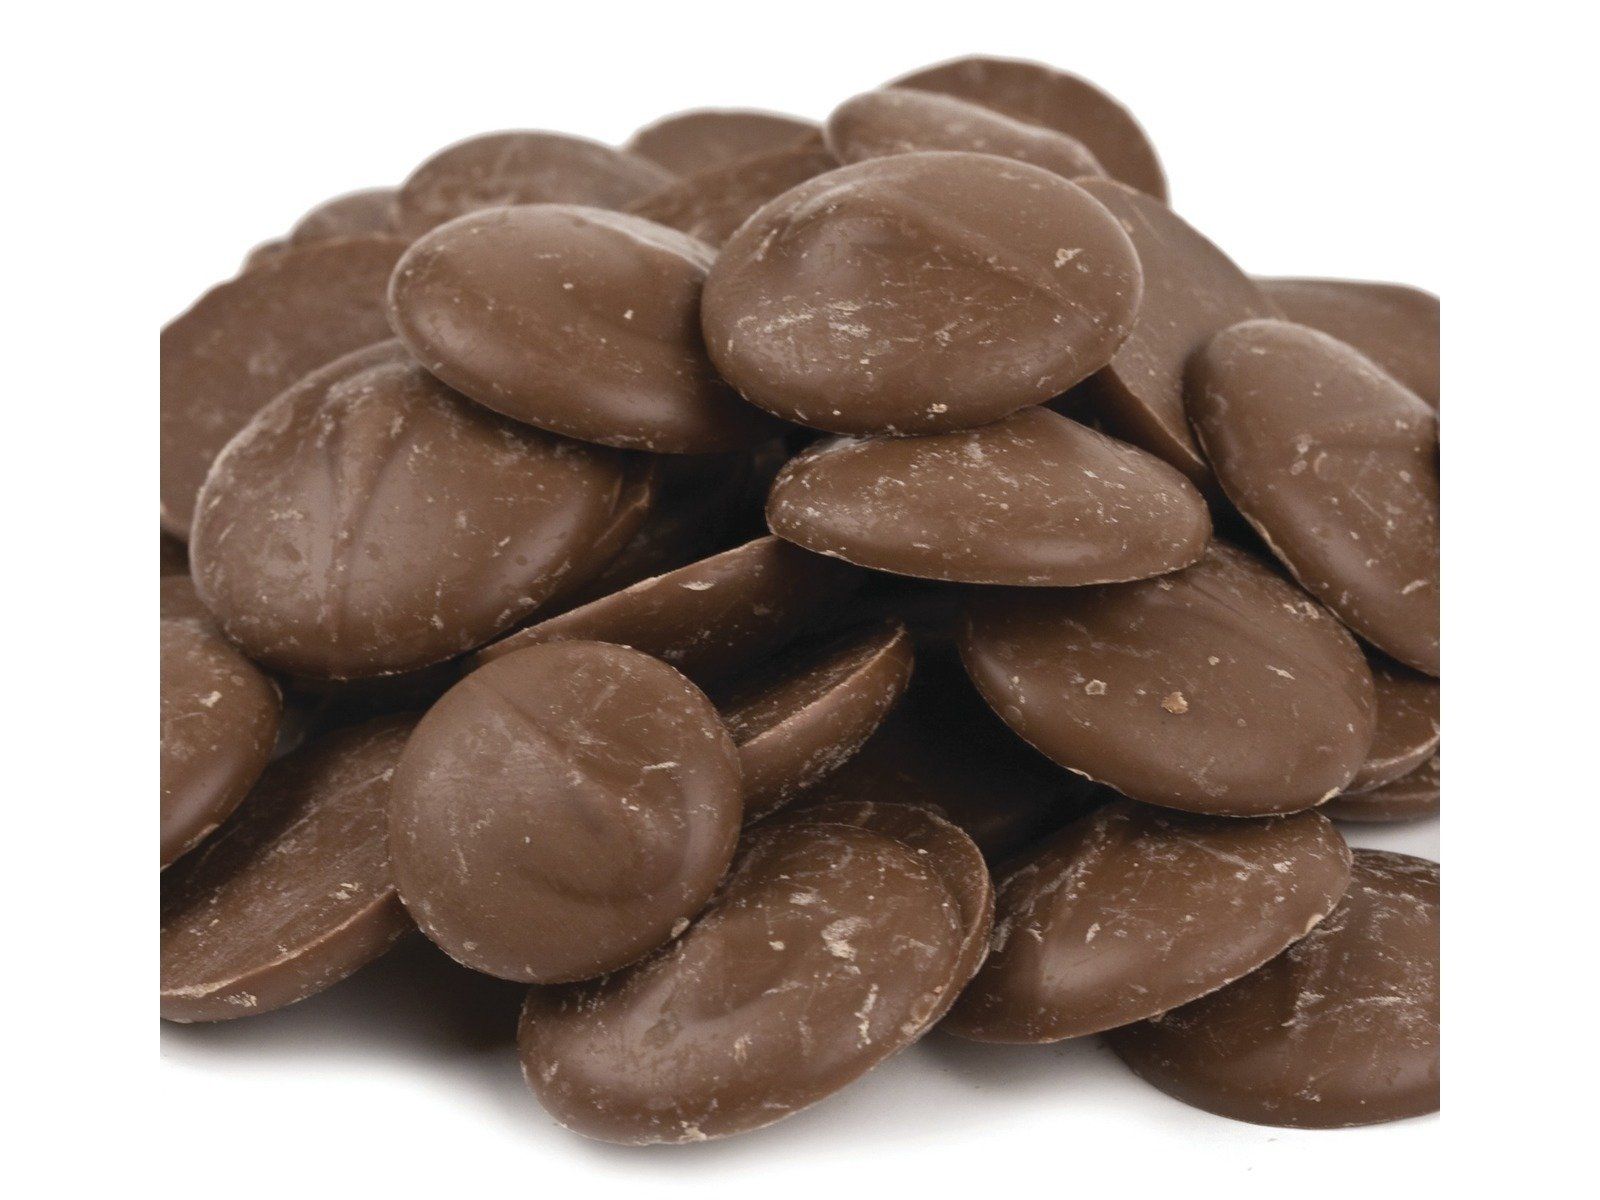 Merckens Coating Melting Wafers Milk Chocolate cocoa lite 10 pounds by Merckens